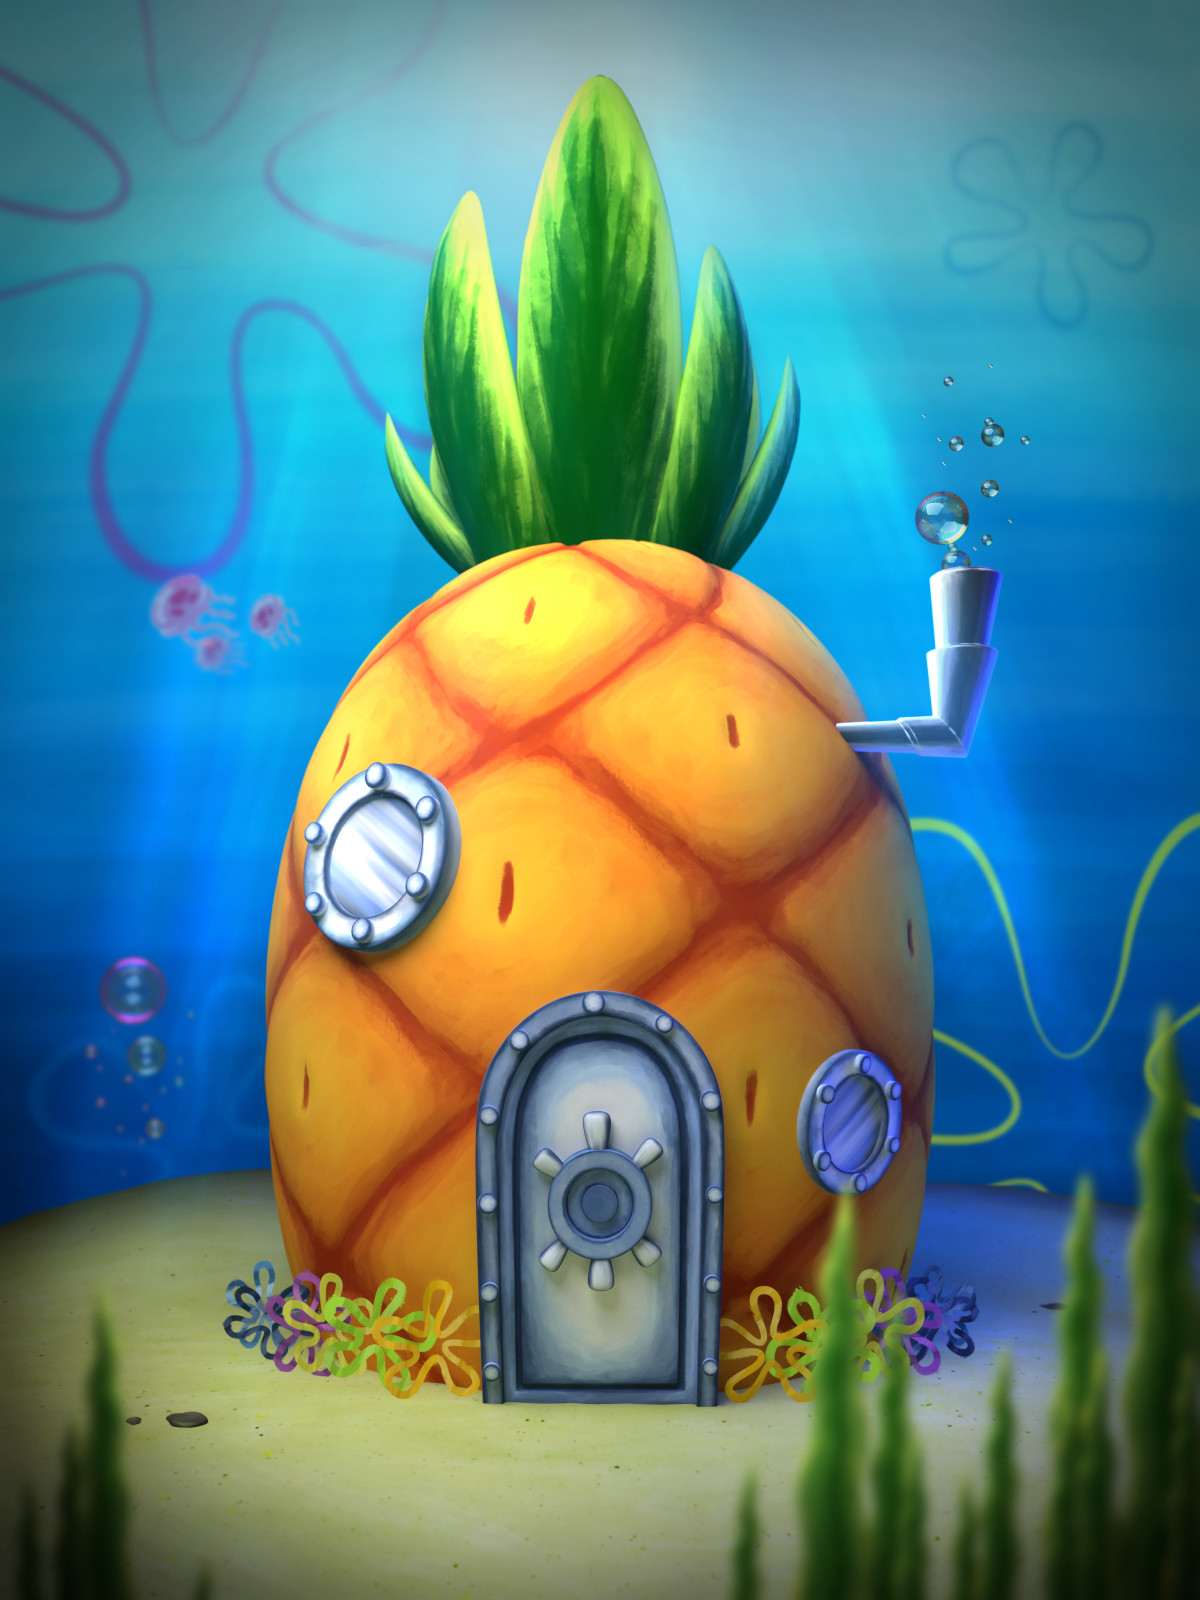 SPONGEBOB'S PINEAPPLE